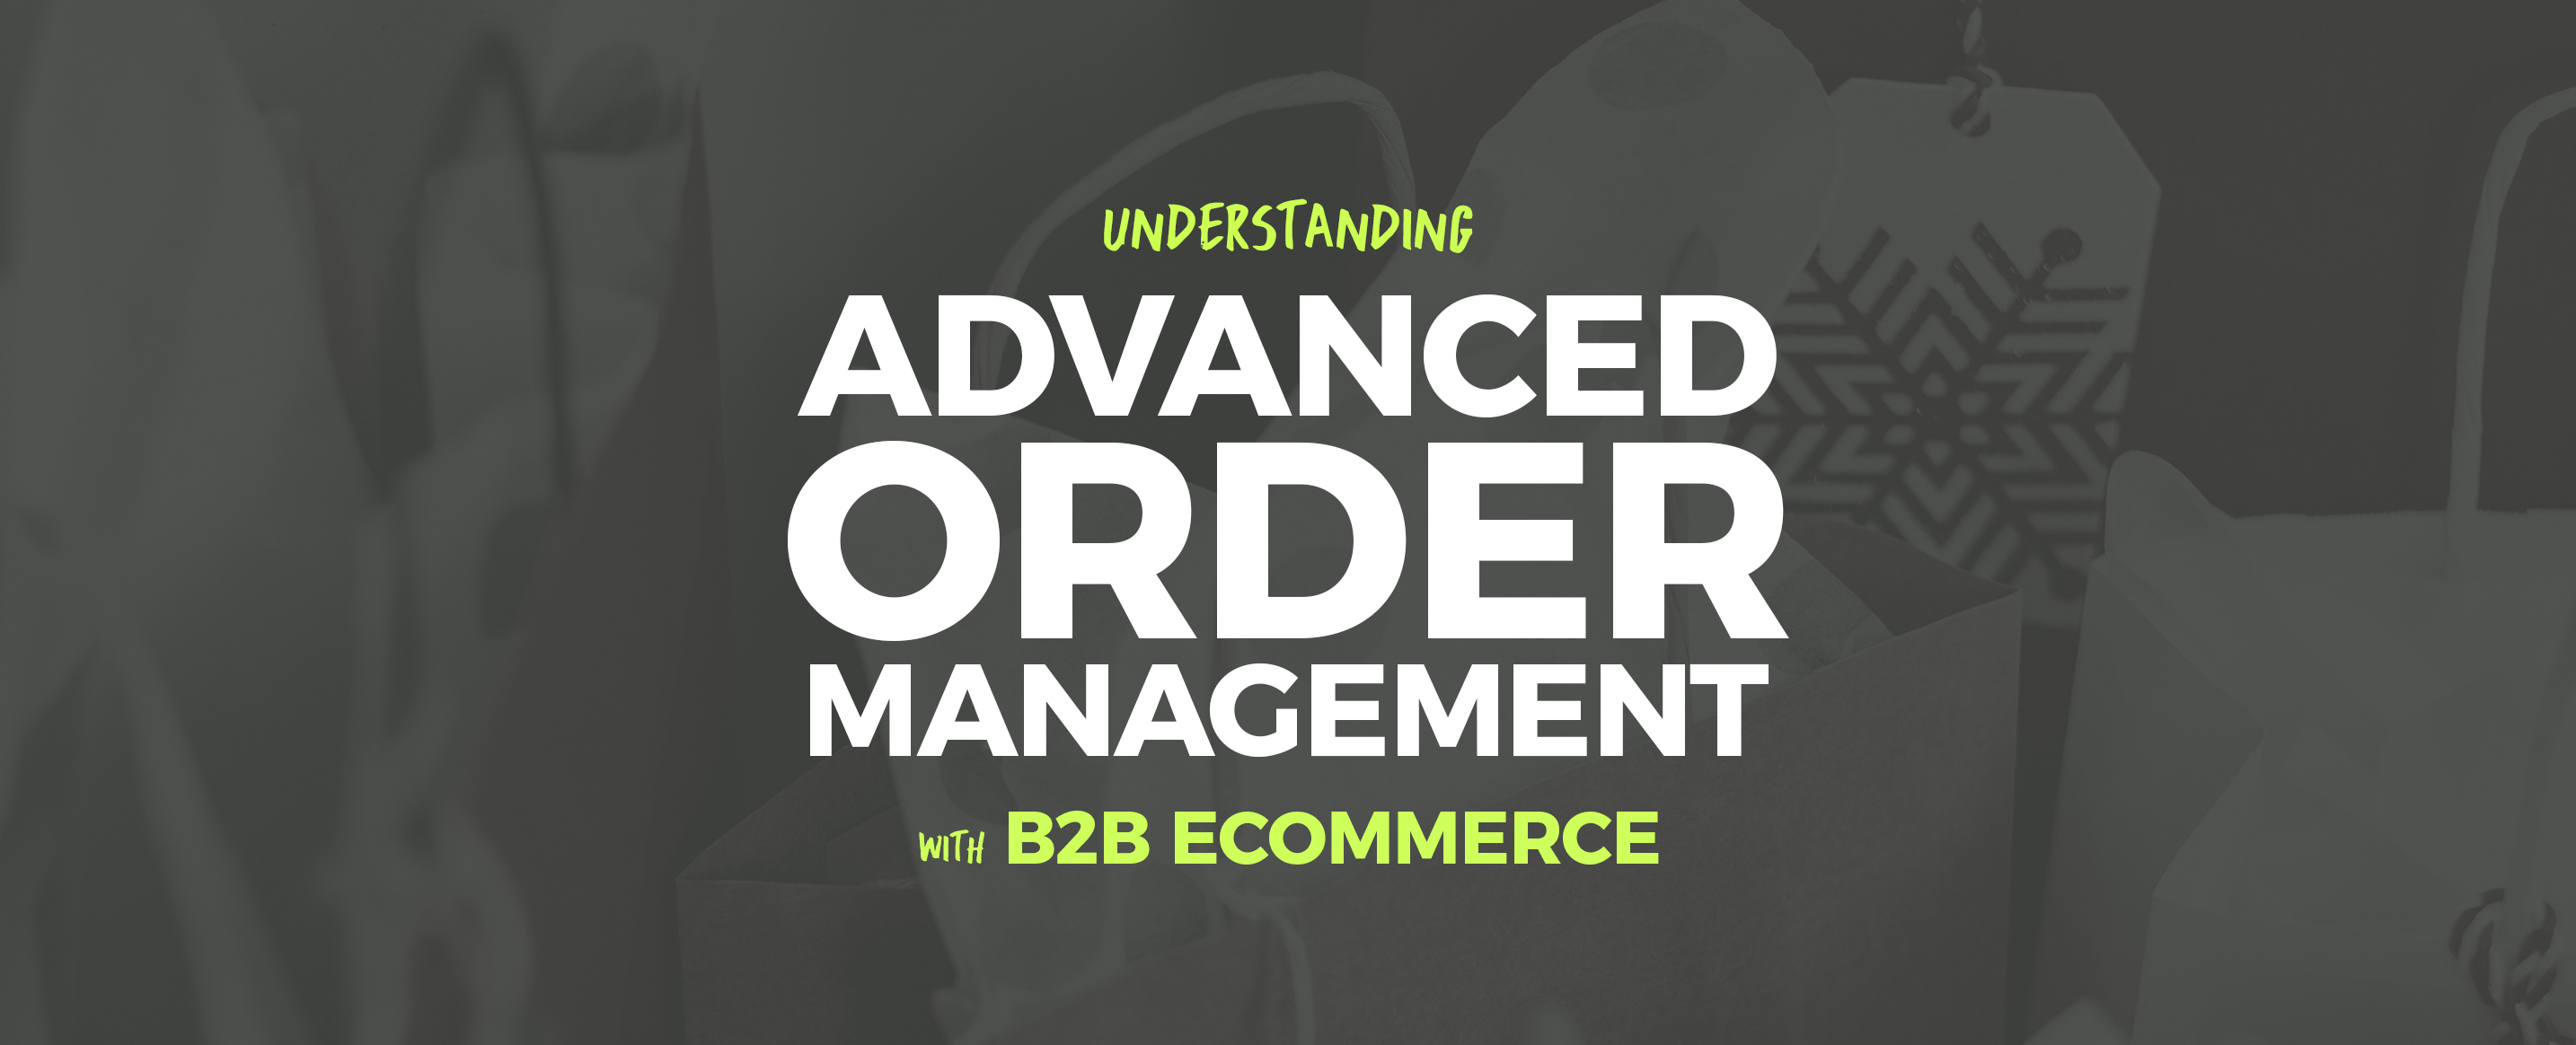 Understanding-Advanced-Order-Management-with-B2B-Ecommerce